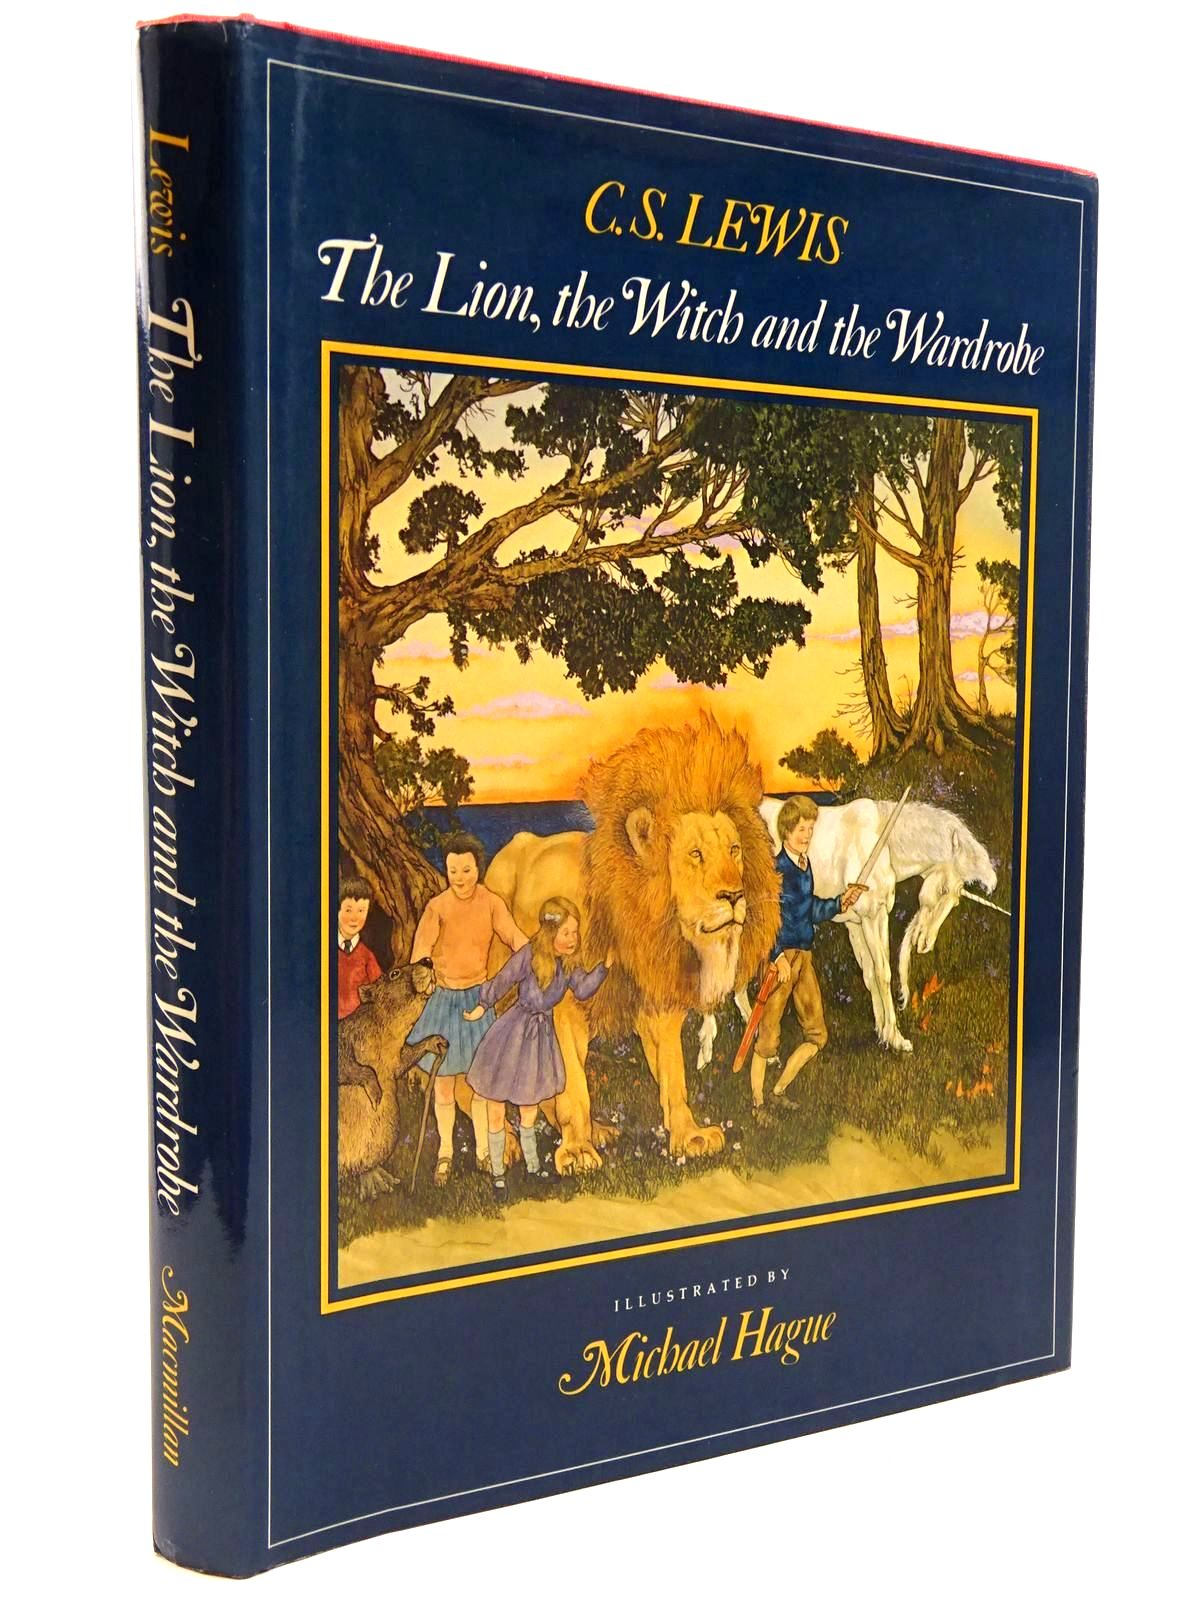 Photo of THE LION, THE WITCH AND THE WARDROBE written by Lewis, C.S. illustrated by Hague, Michael published by Macmillan Publishing Co. (STOCK CODE: 2130623)  for sale by Stella & Rose's Books